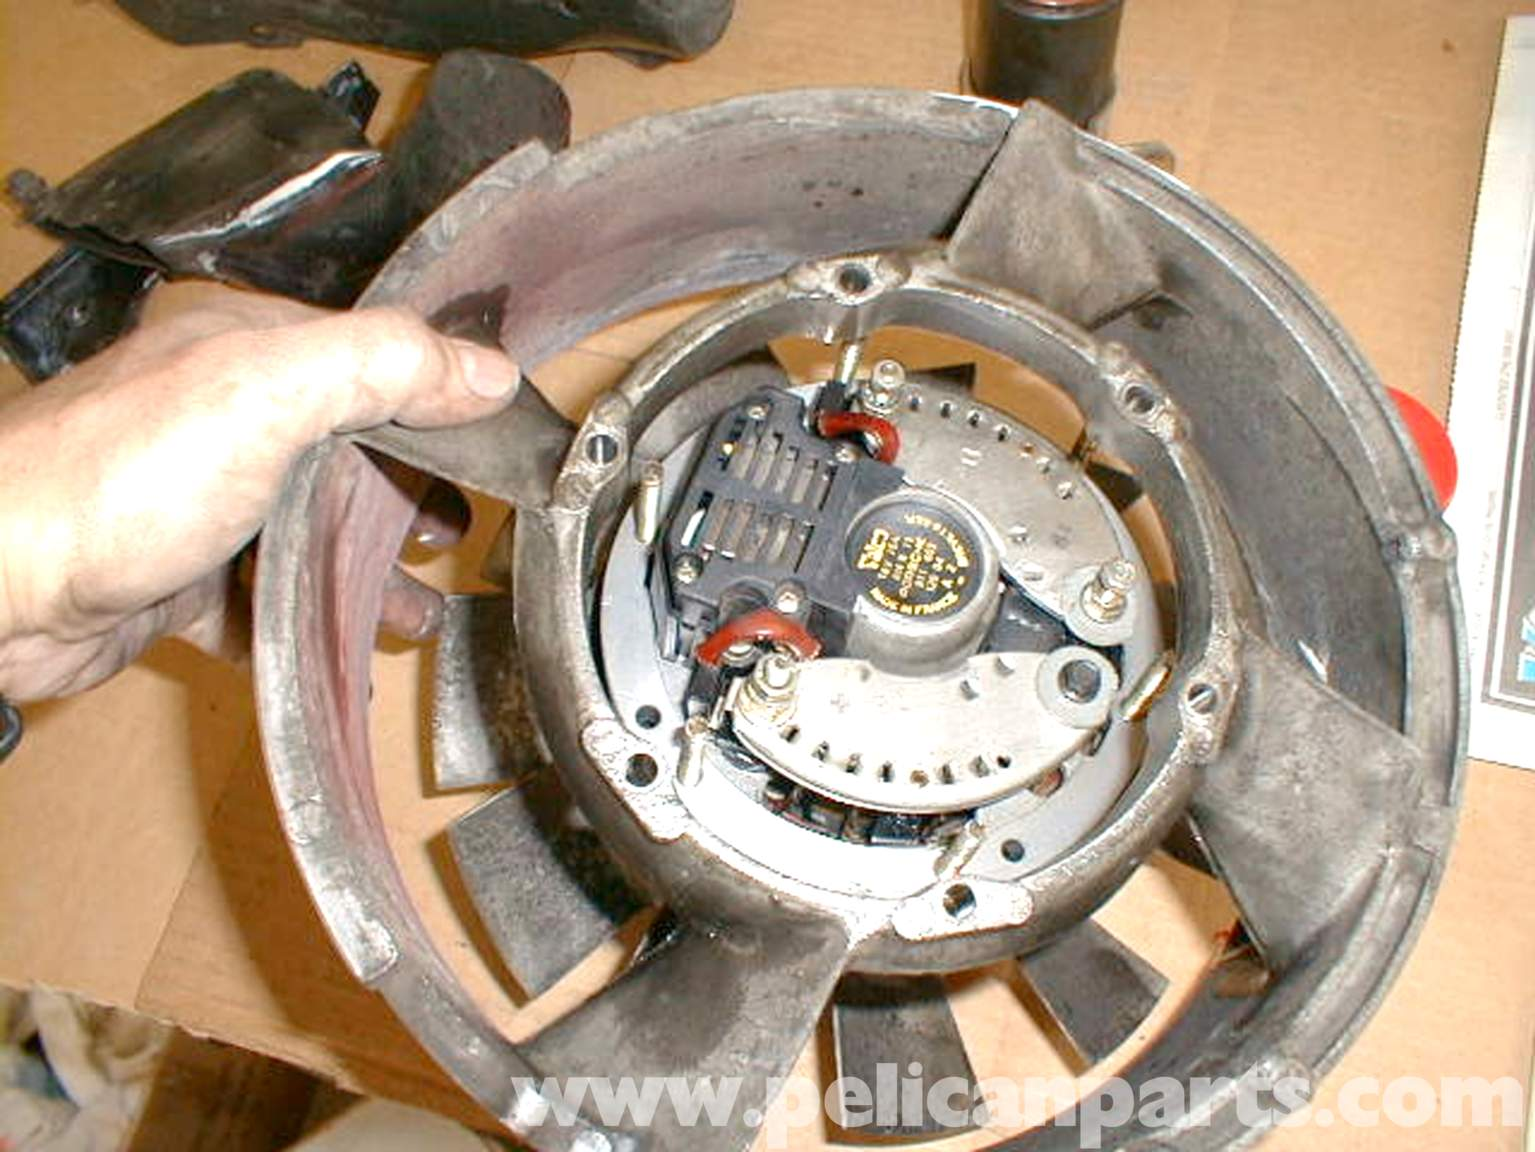 porsche 911 alternator troubleshooting and replacement 911 1965 89 930 turbo 1975 89